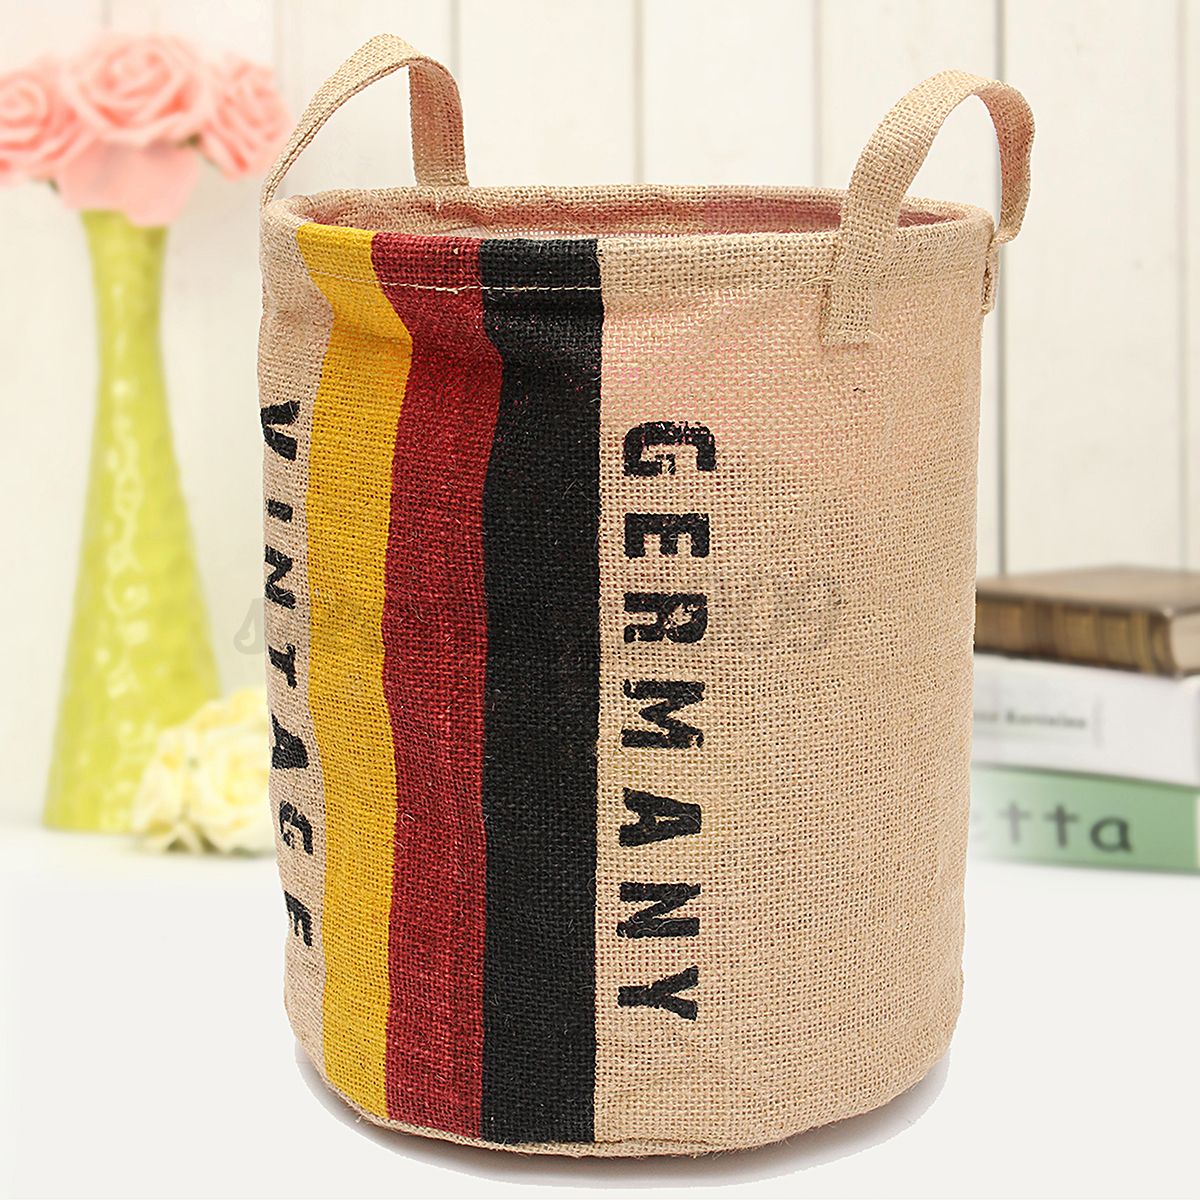 Laundry Clothes Bag Foldable Cotton Linen Washing Clothes Laundry Basket